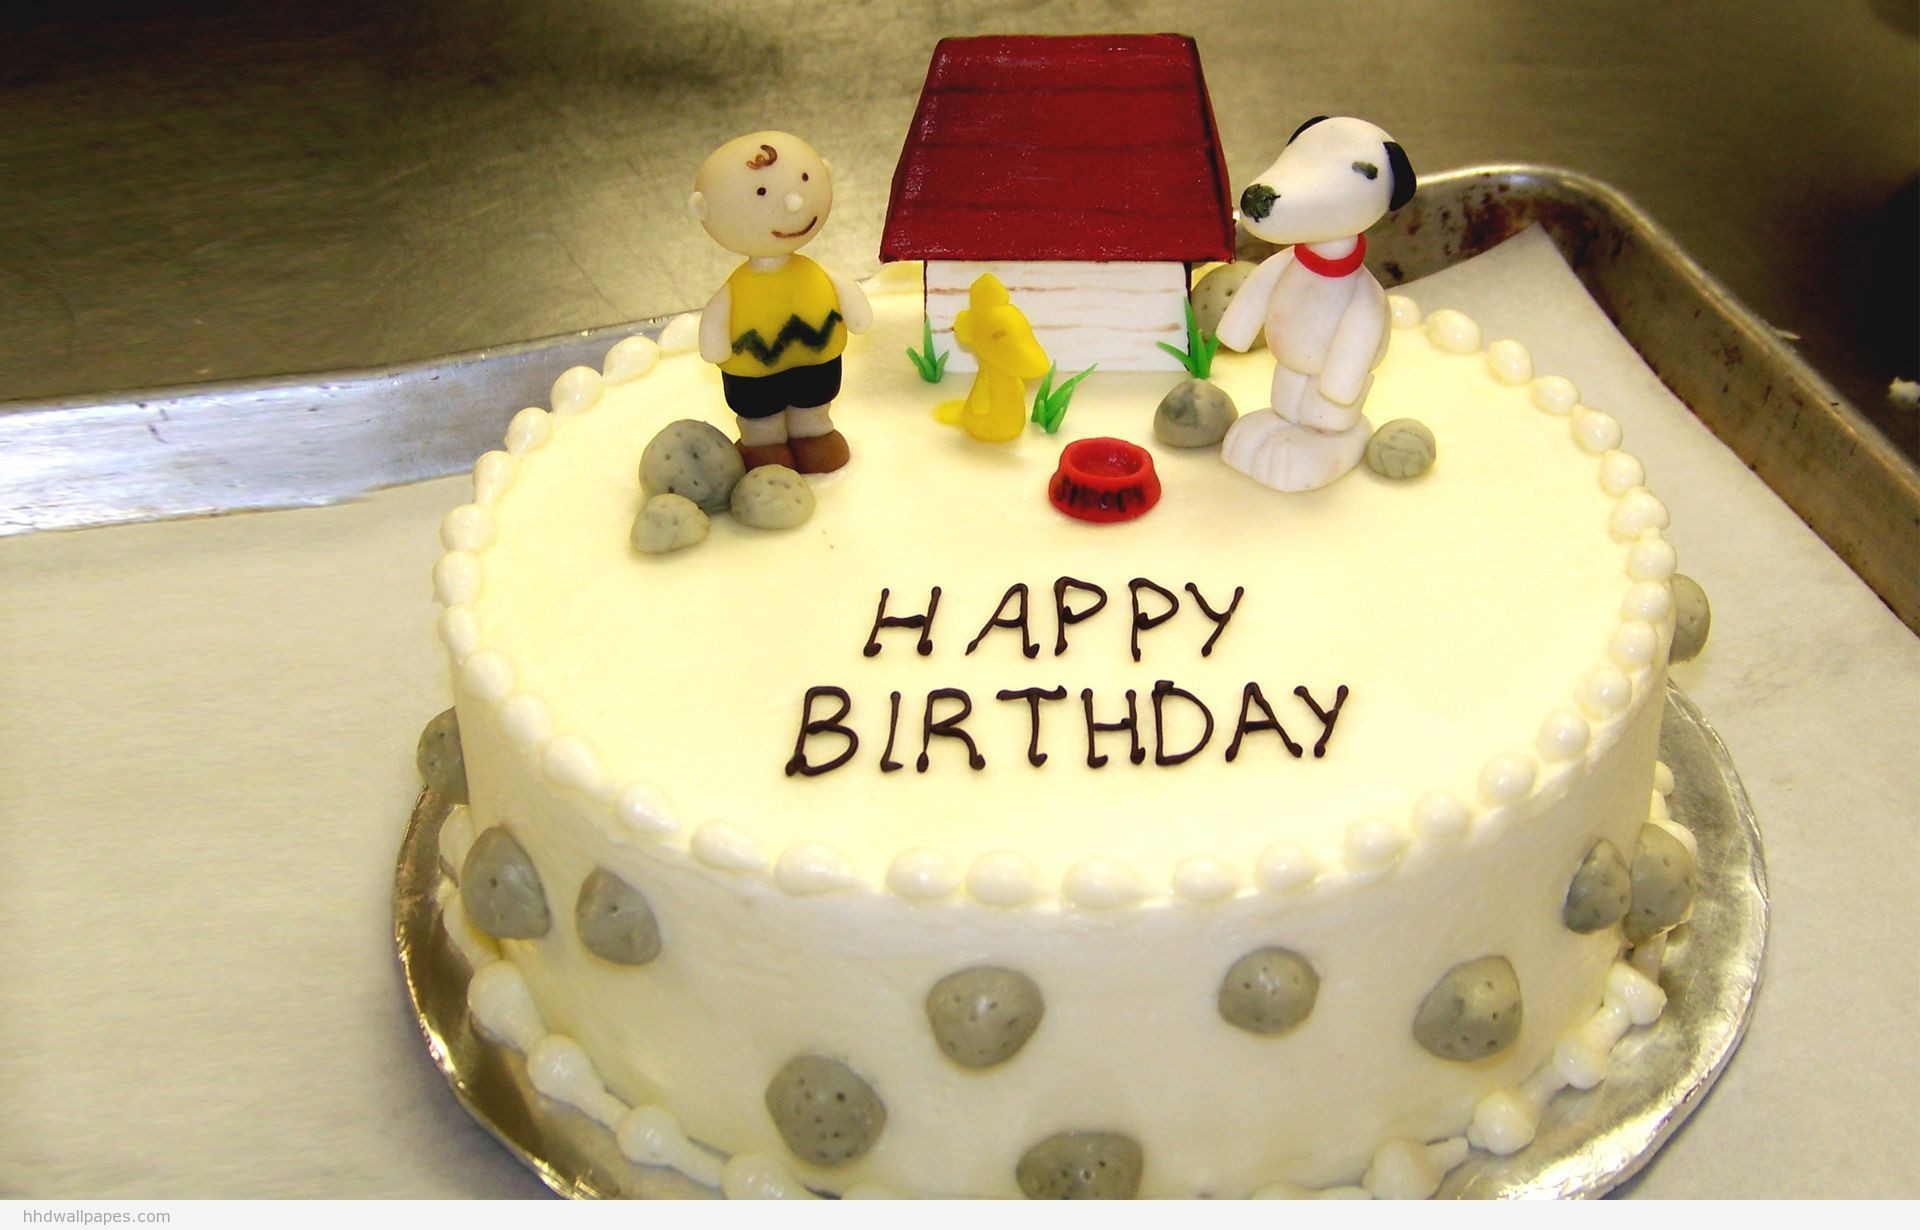 Best ideas about Birthday Cake With Name . Save or Pin Birthday Cake Pic With Name Wallpapers 37 Wallpapers Now.